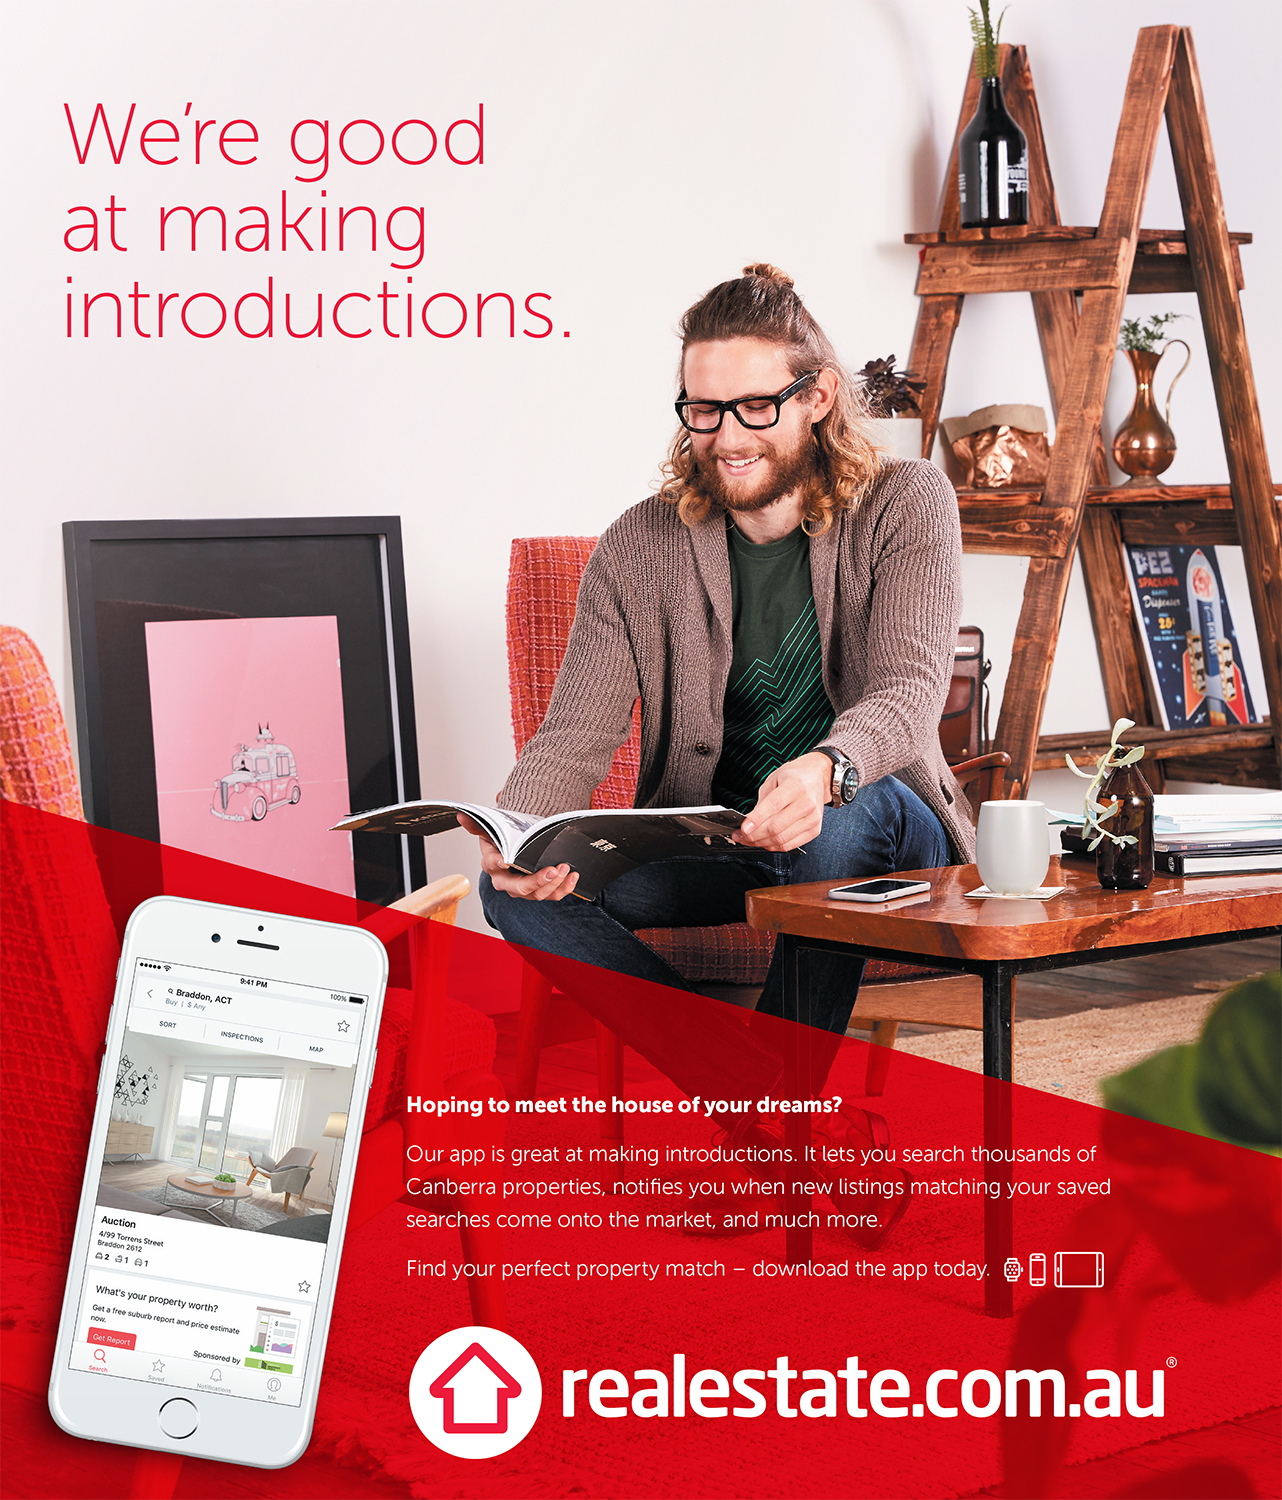 REA - home and lifestyle photography for advertising and marketing campaign by canberra photographer